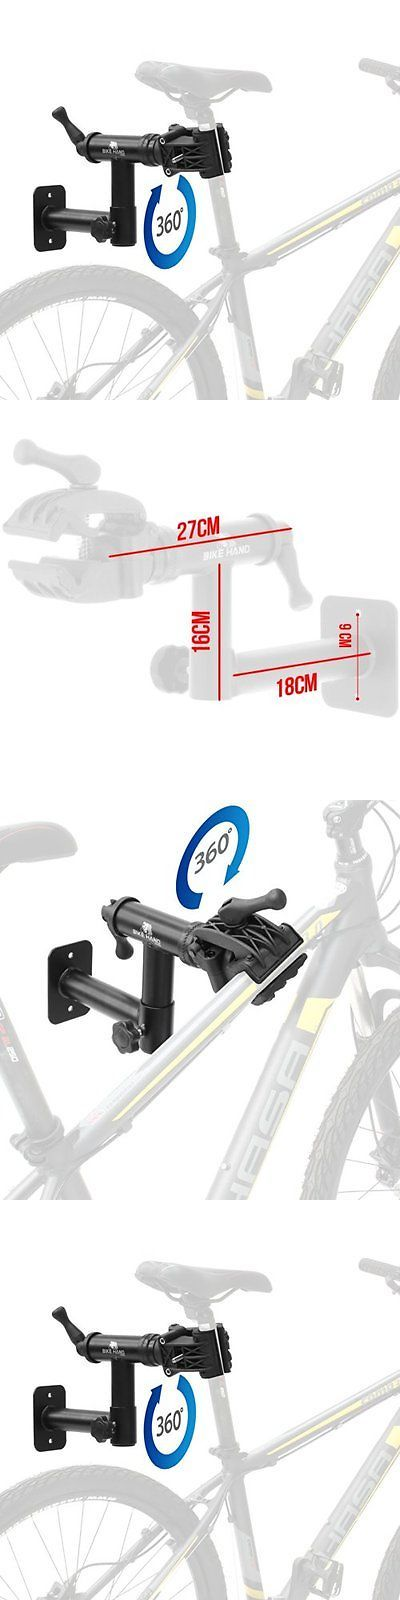 Workstands 177847: Bicycle Repair Stand Wall Mount Bike Rack Rotating Clamp Seatpost Top Tube Cycel -> BUY IT NOW ONLY: $72.27 on eBay!